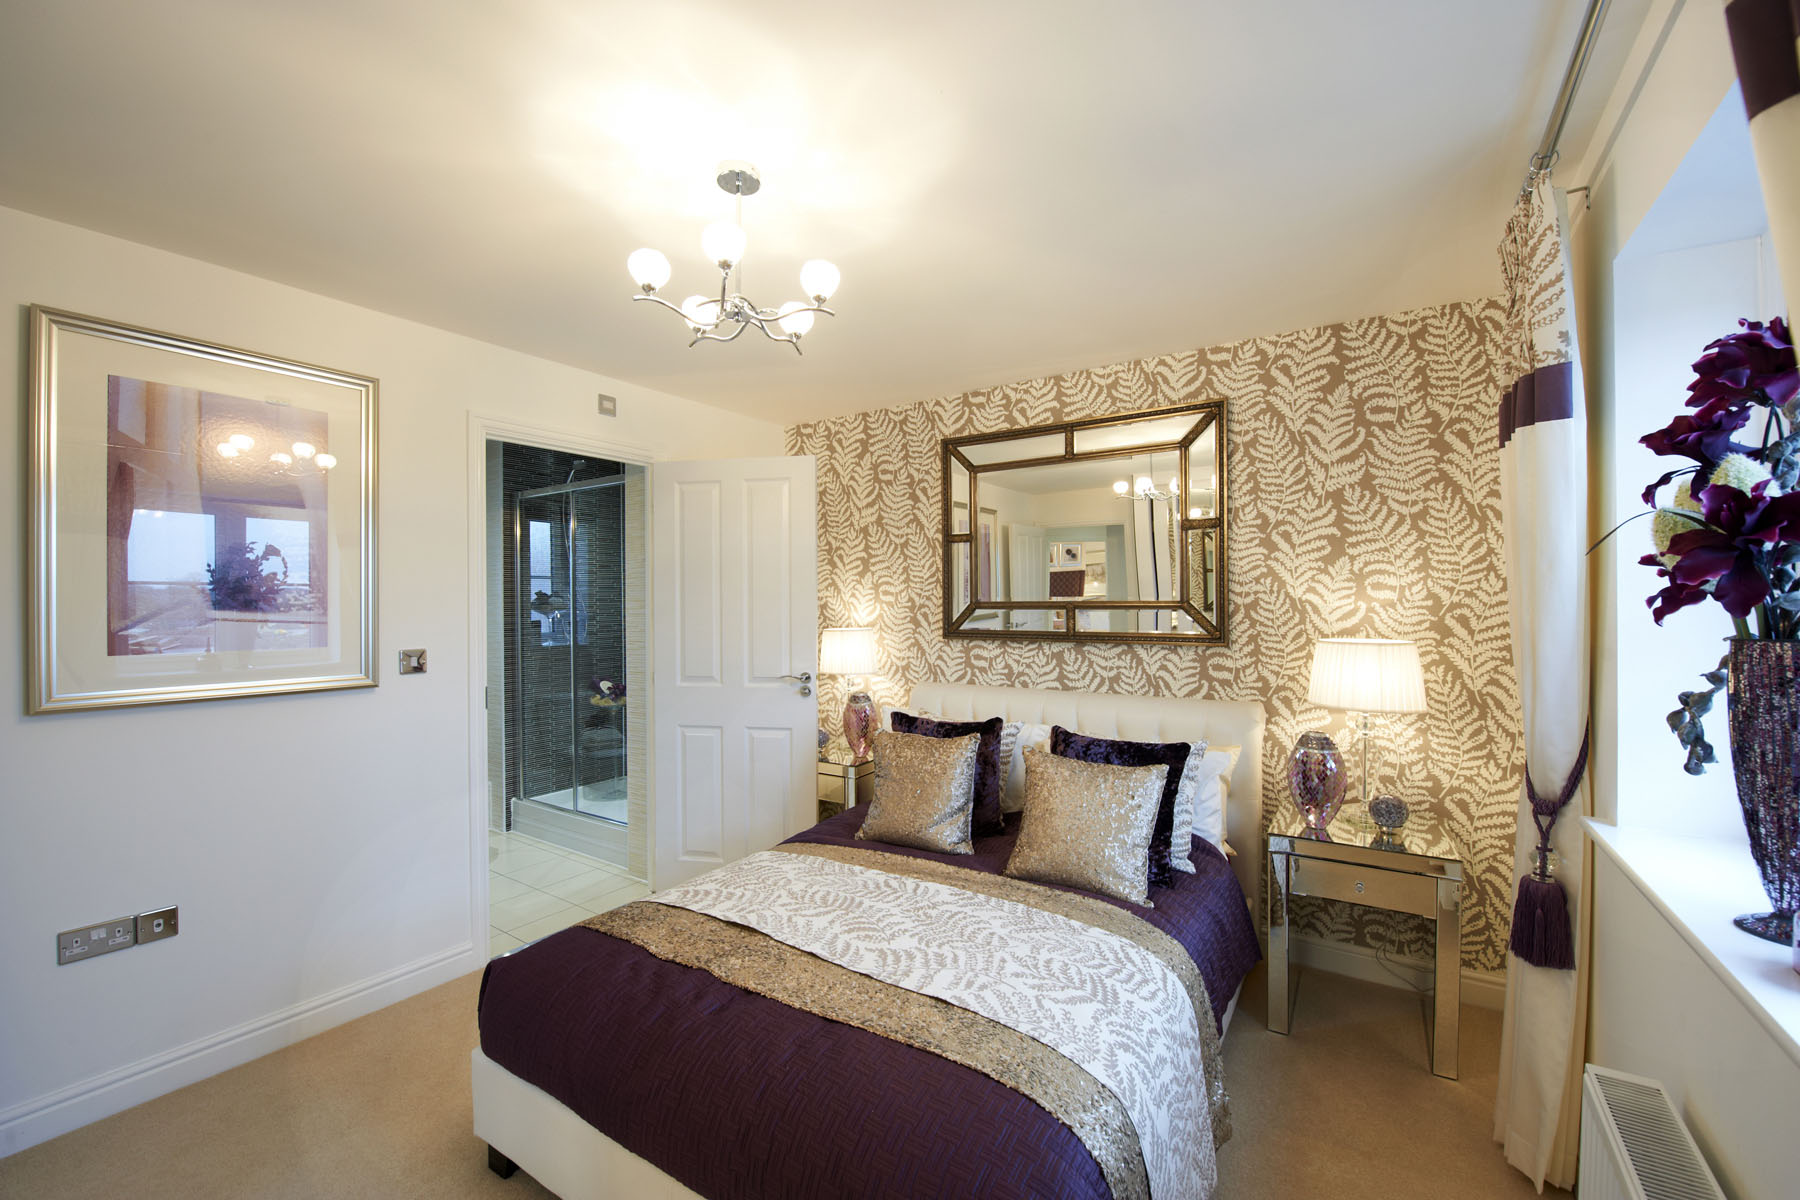 The Sherston en suite bedroom